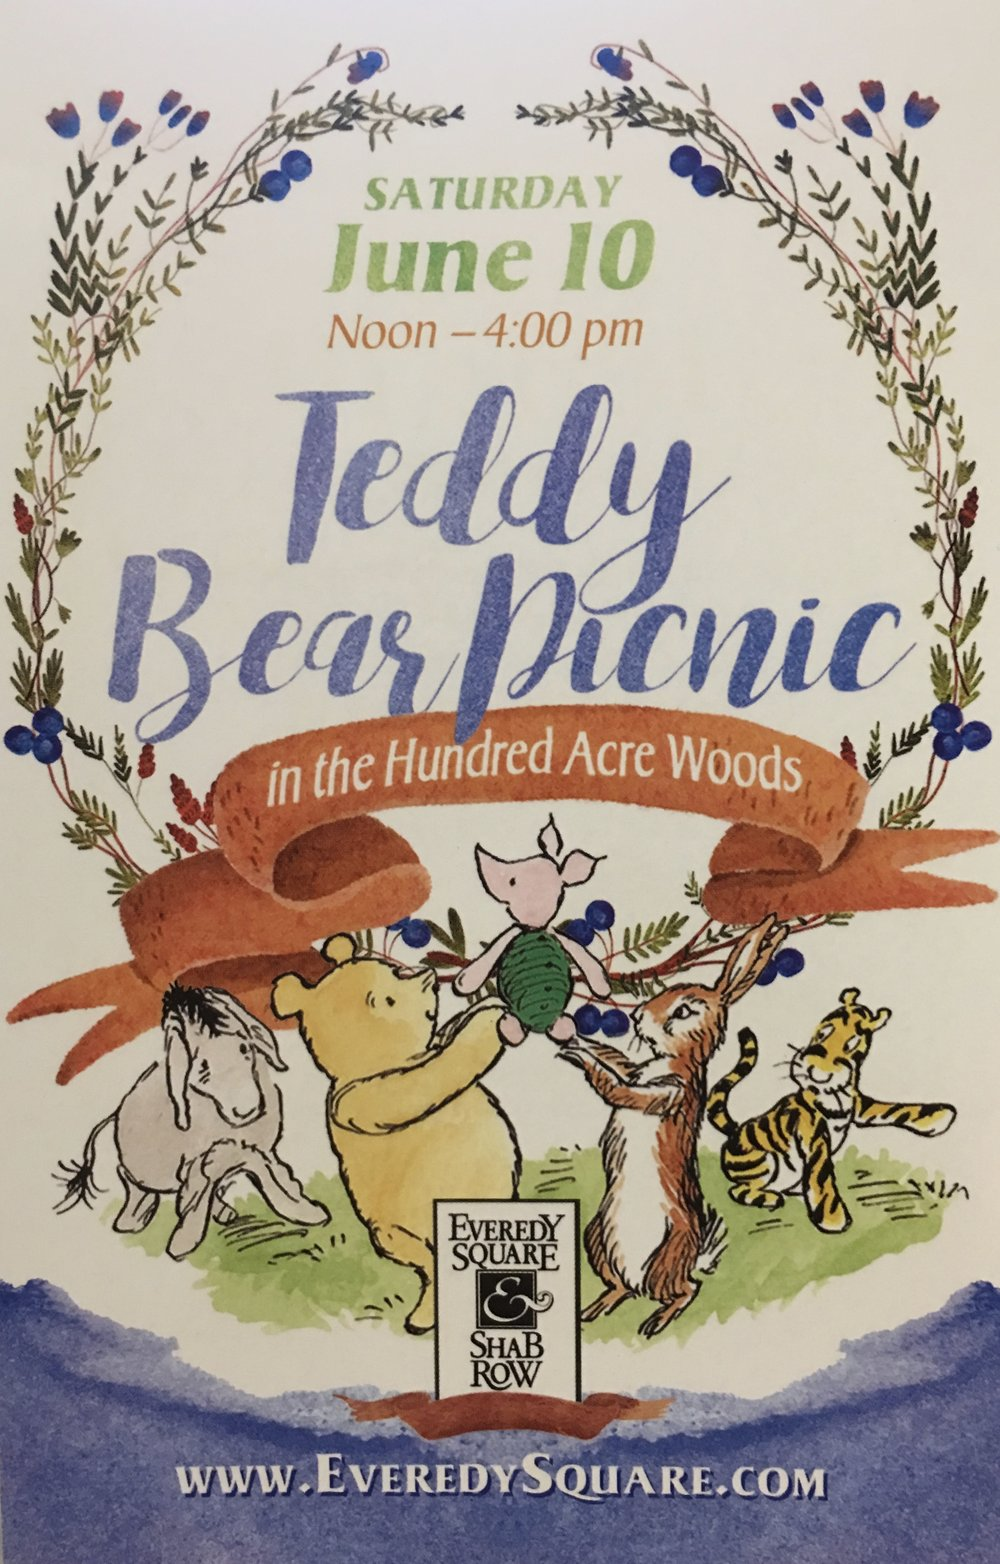 - Our friends from the Hundred Acre Woods are visiting this year! Join Pooh Bear and friends for a fun filled, family friendly day in Everedy Square! Activities include a pin the tail on Eeyore game, face painting, costumed characters, balloons, and a scavenger hunt!